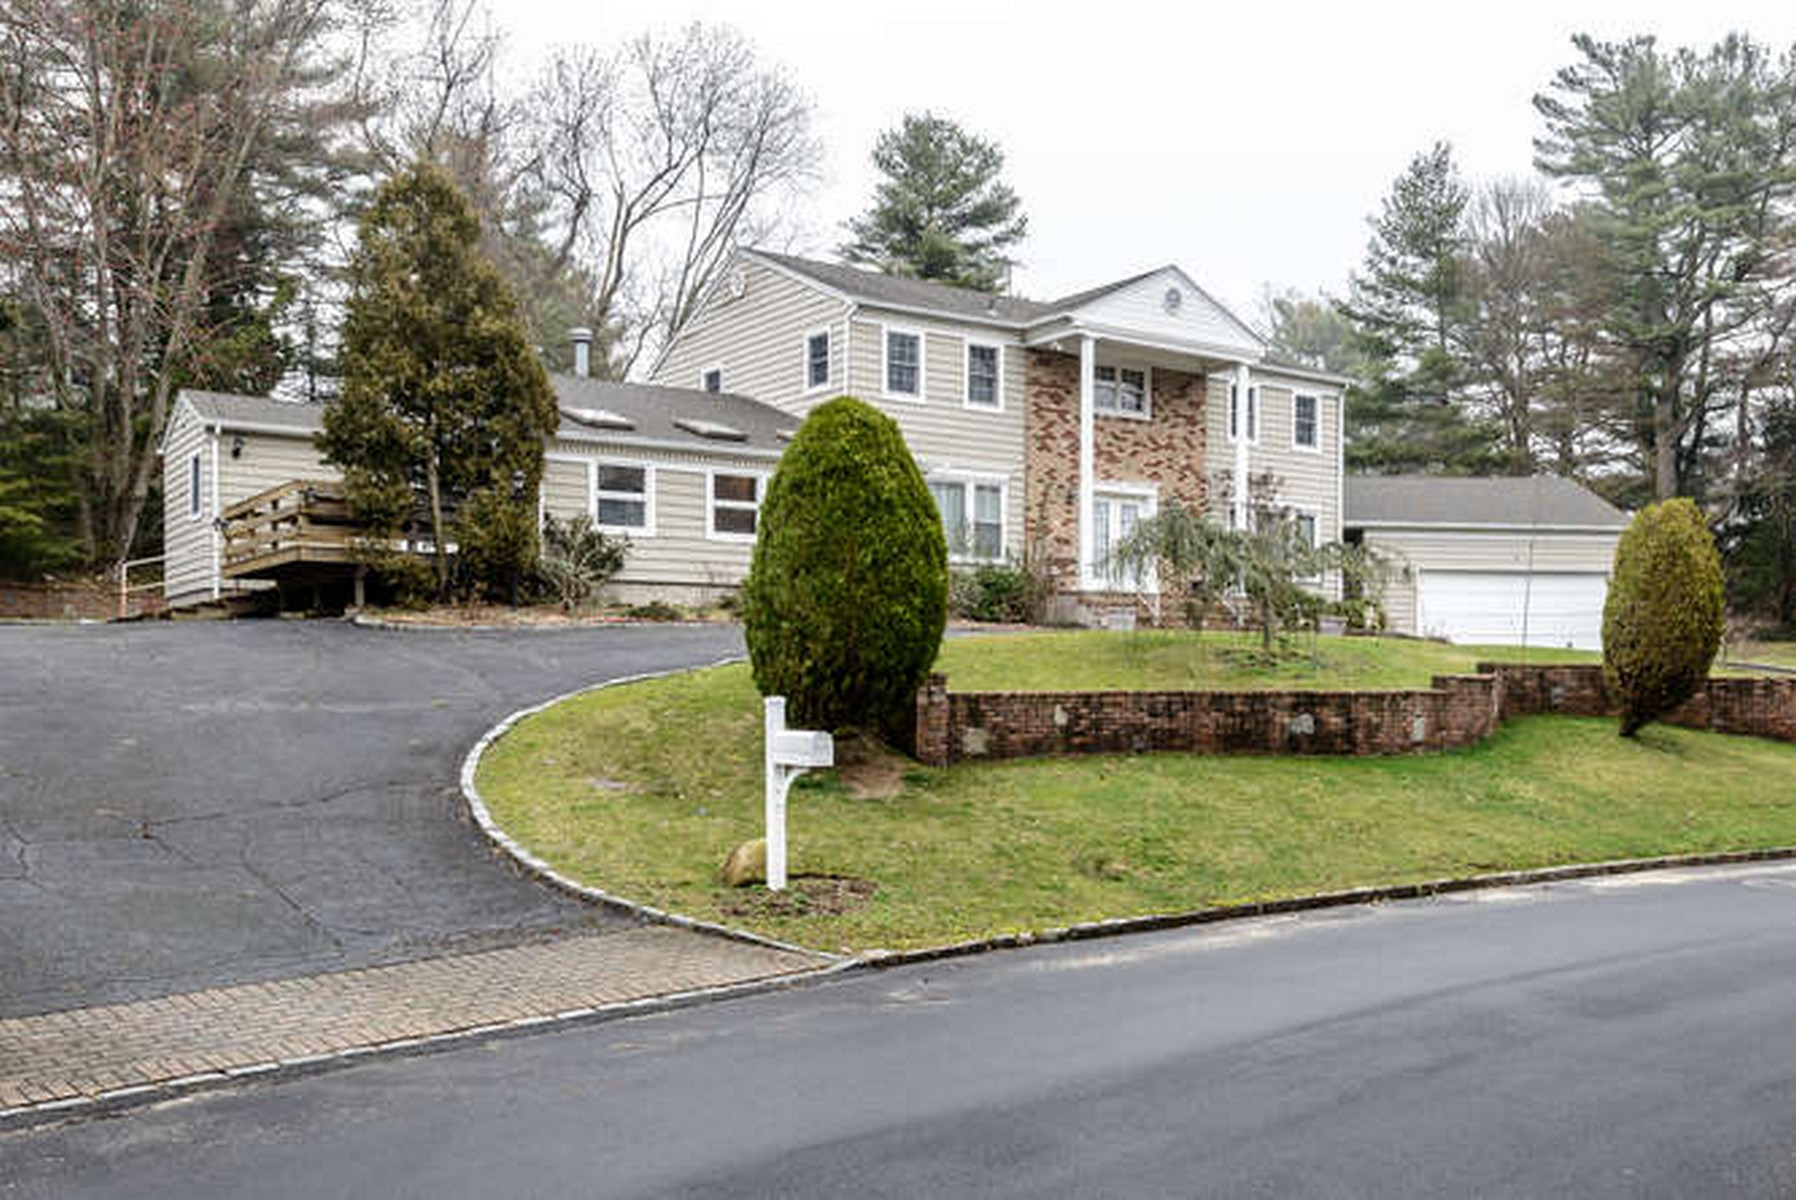 Single Family Home for Sale at Colonial 1 Kathy Dr Muttontown, New York, 11753 United States